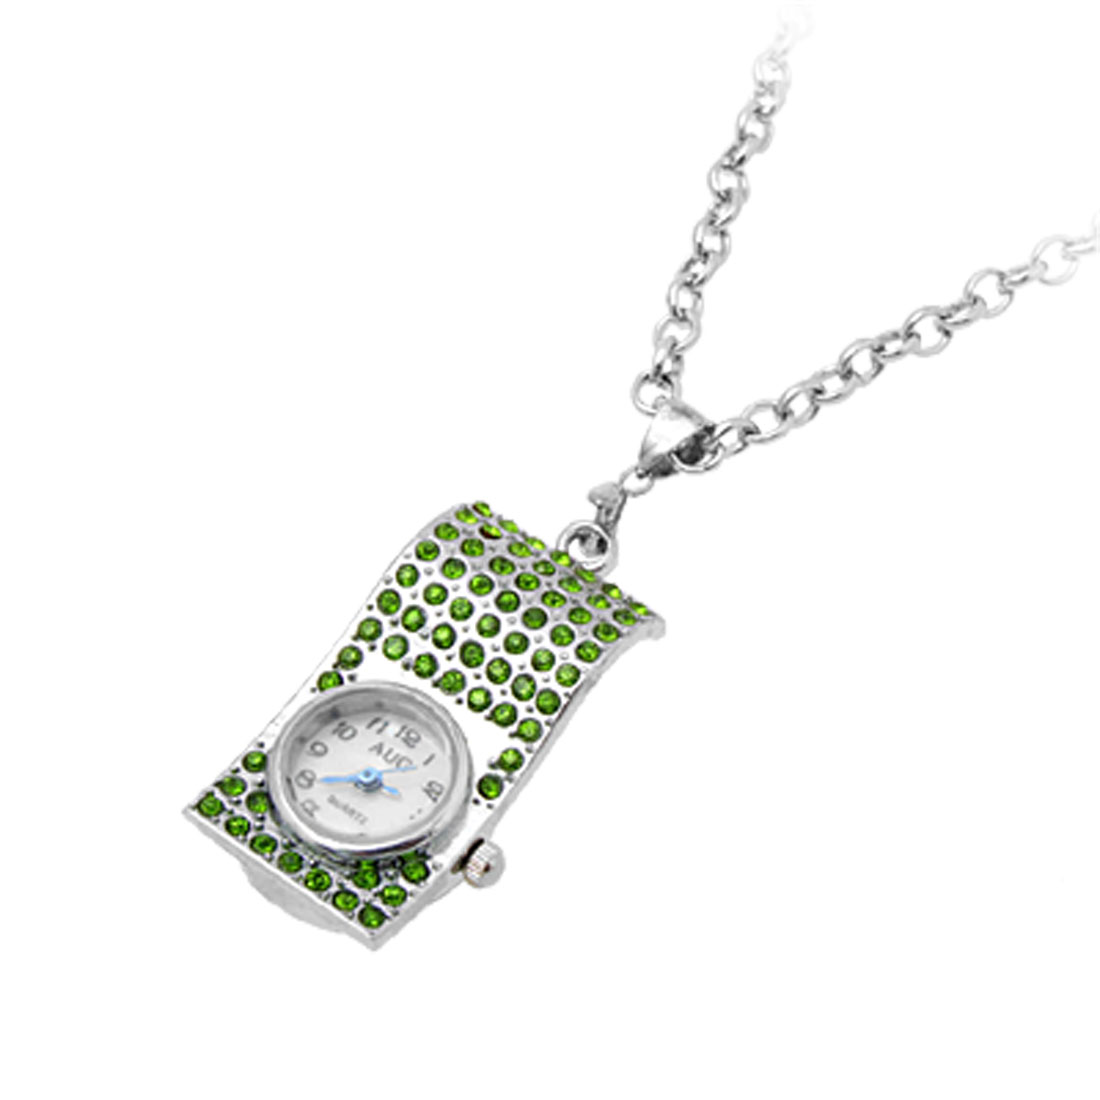 Jewelry Necklace Skate Crystal Pendant Quartz Watch Green